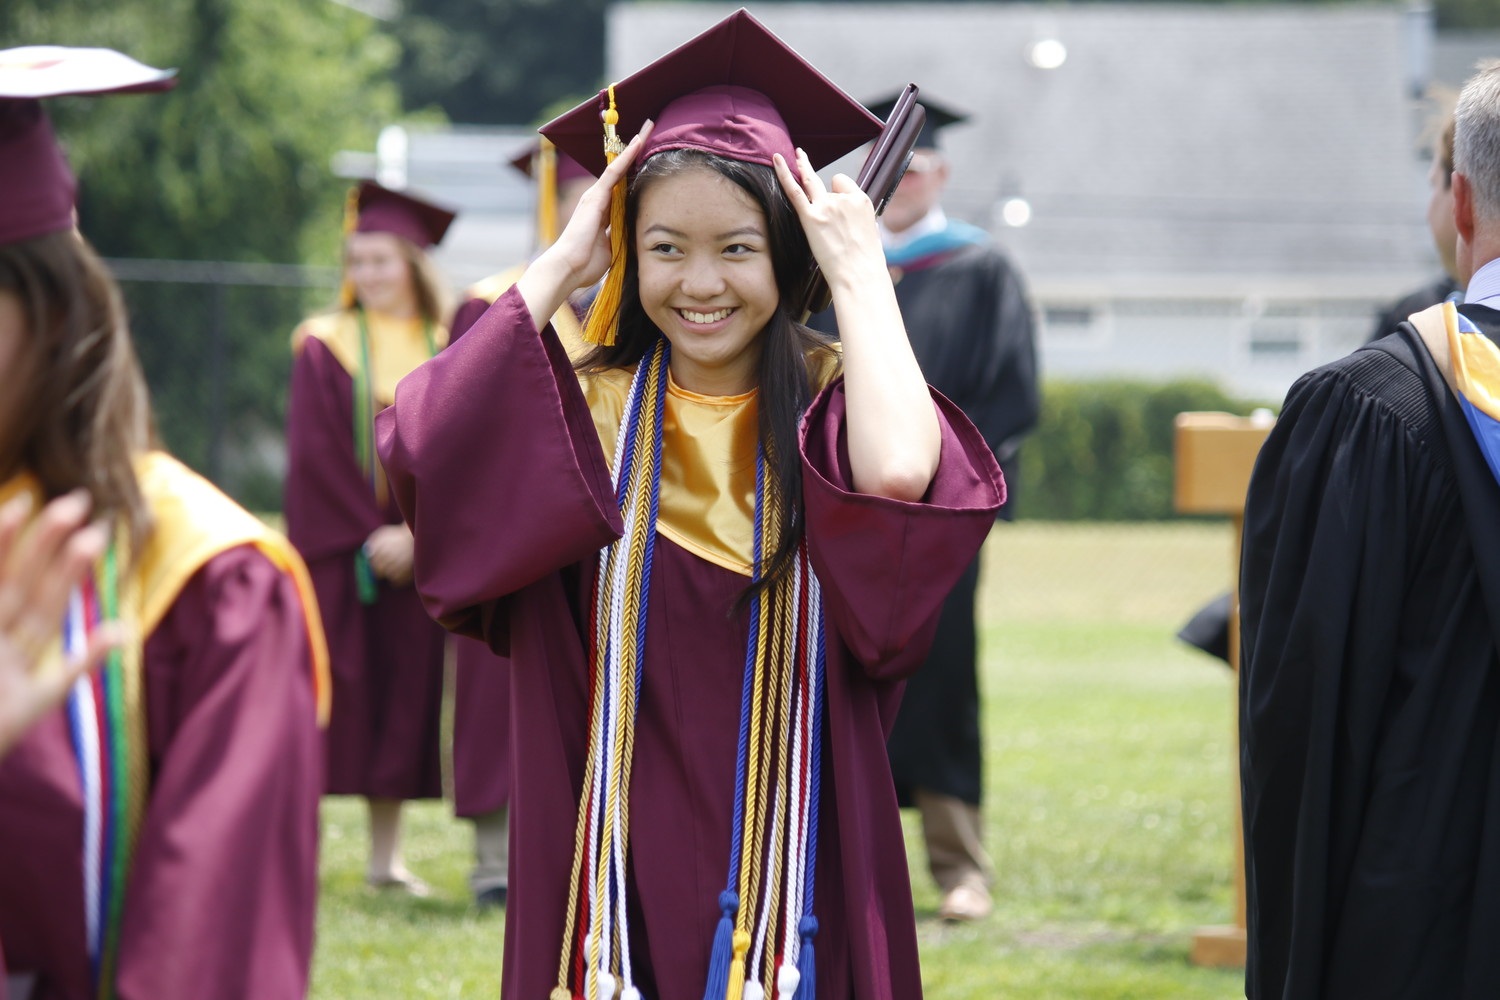 Amanda Britney Chau, a W.T. Clarke High School graduate, earned the President's Award and a Scholar Diploma. She also belonged to the school's English, history, math, music, science and national honor societies.